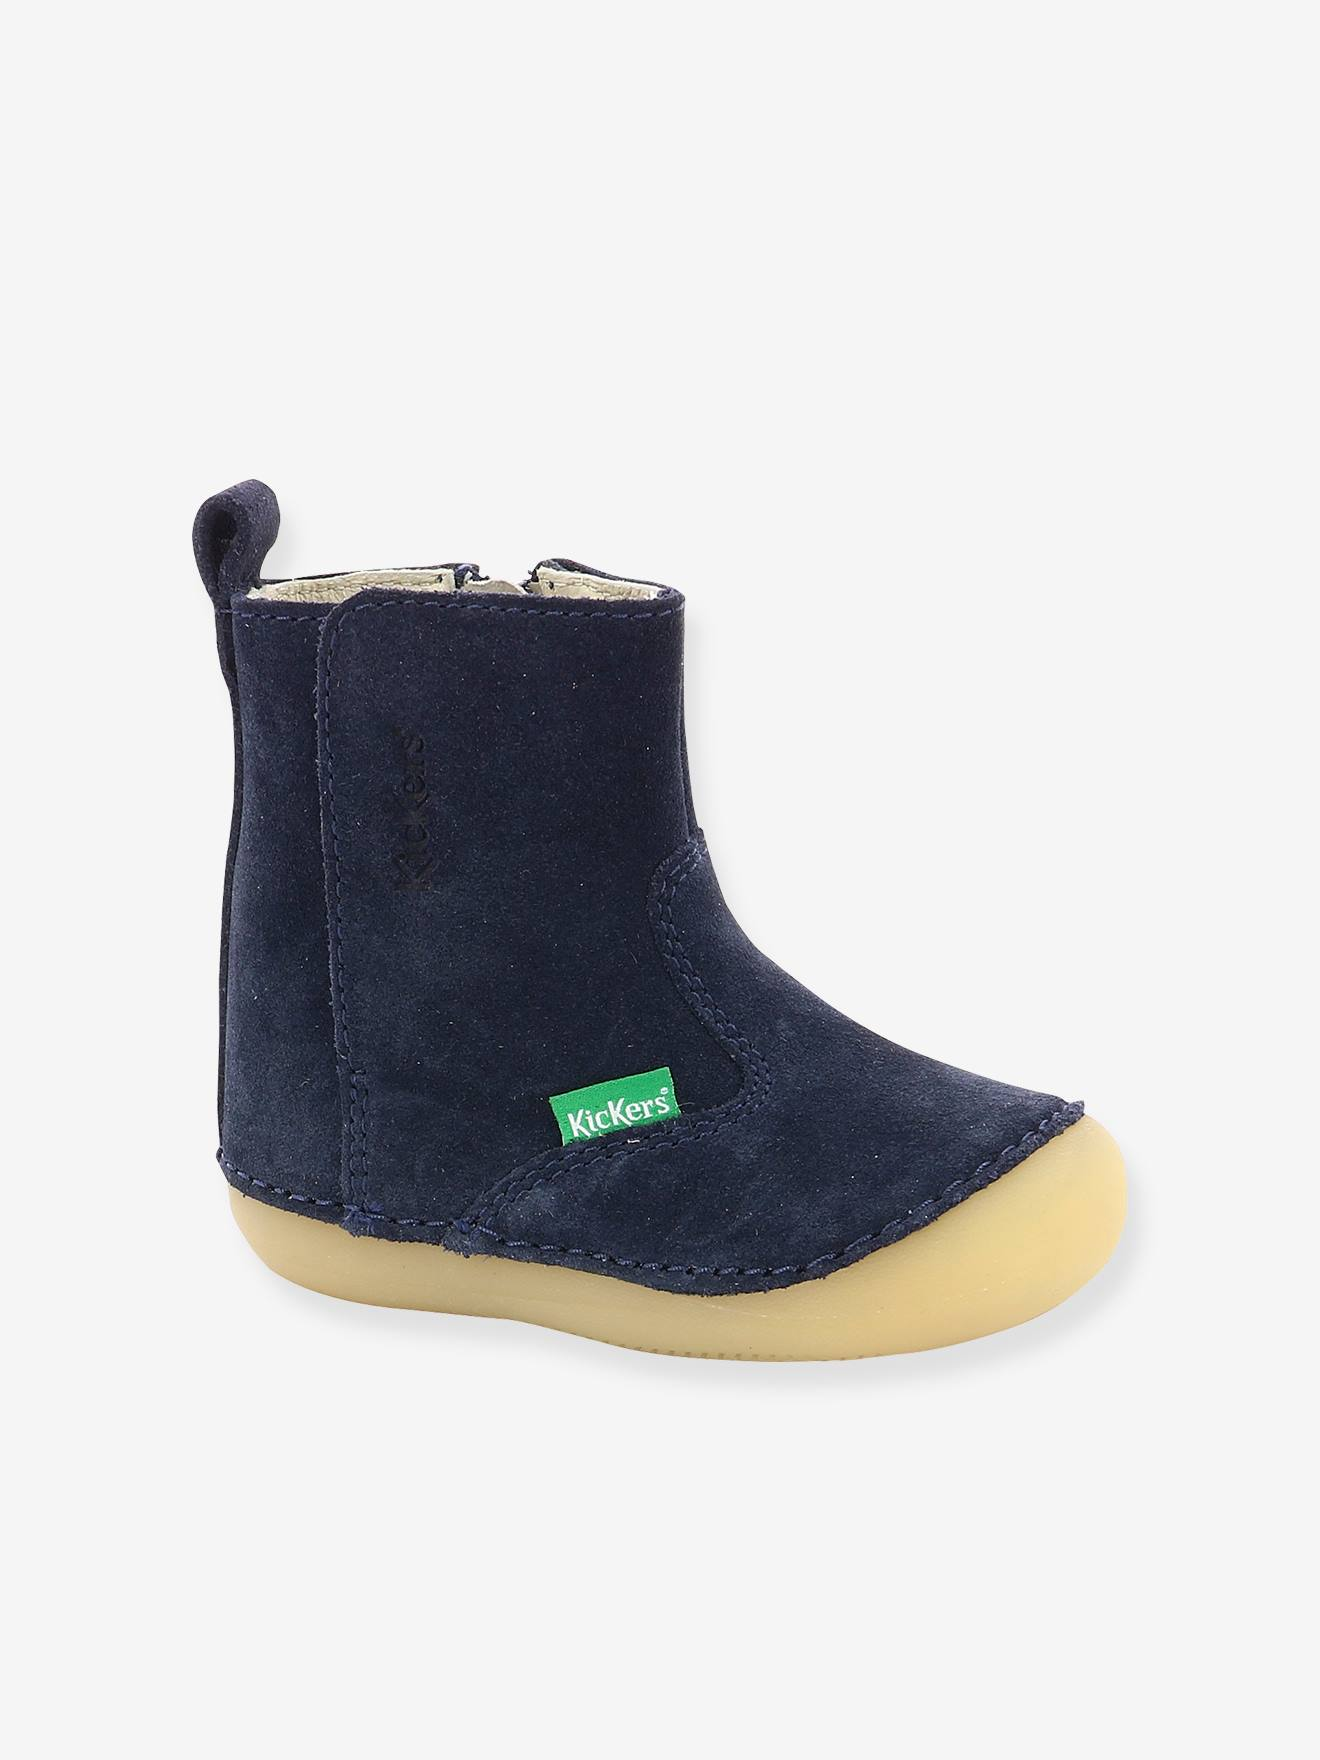 cuir Socool fille bébé marineChaussures Boots KICKERS® pas 1ers 8nwNvm0